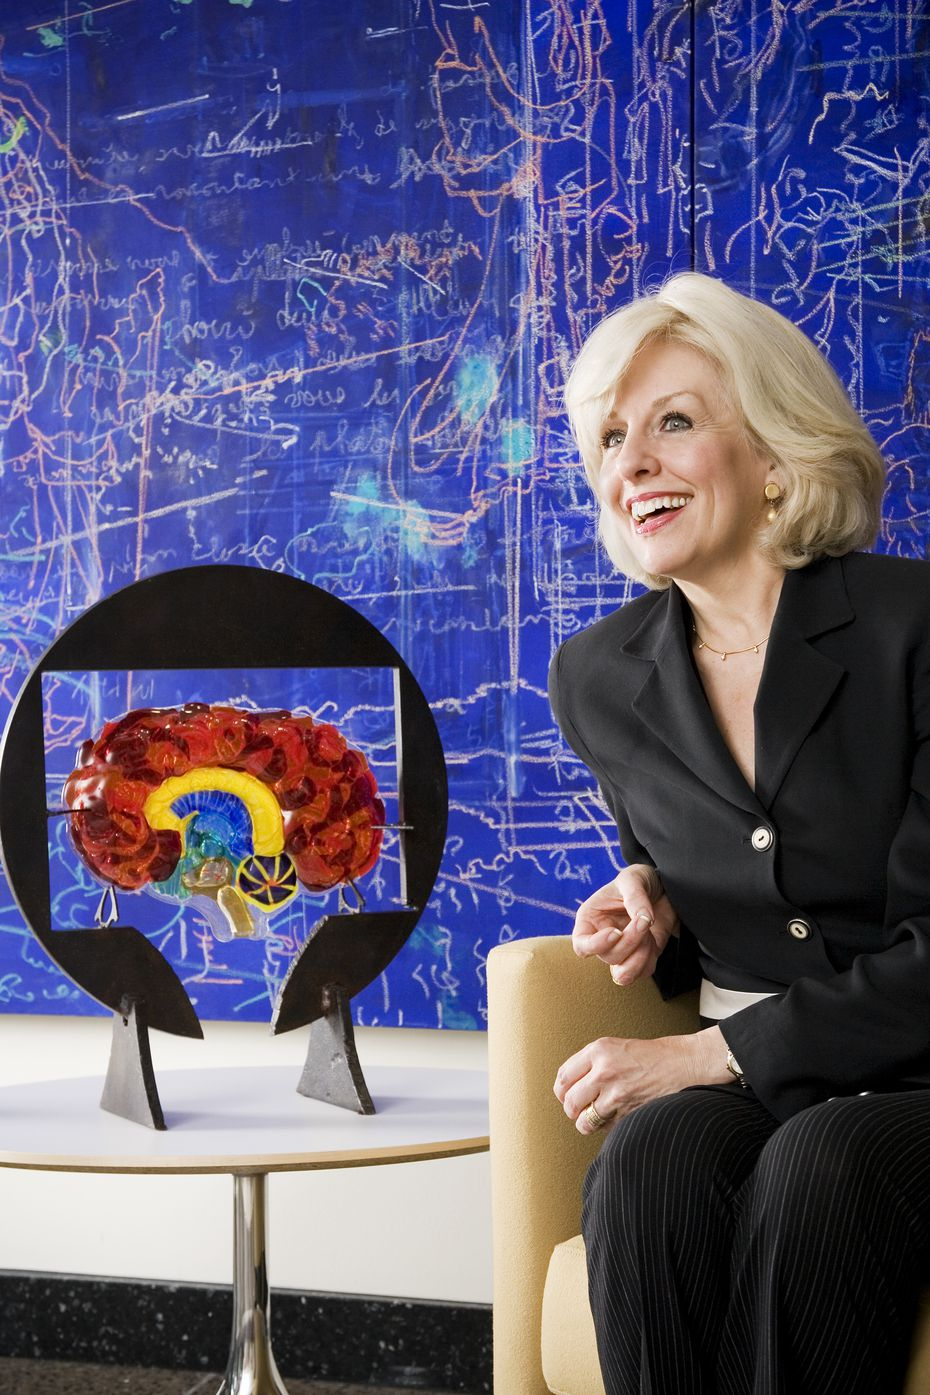 Dr. Sandra Bond Chapman, founder and chief director of the Center for BrainHealth and co-leader of The BrainHealth Project in Dallas.